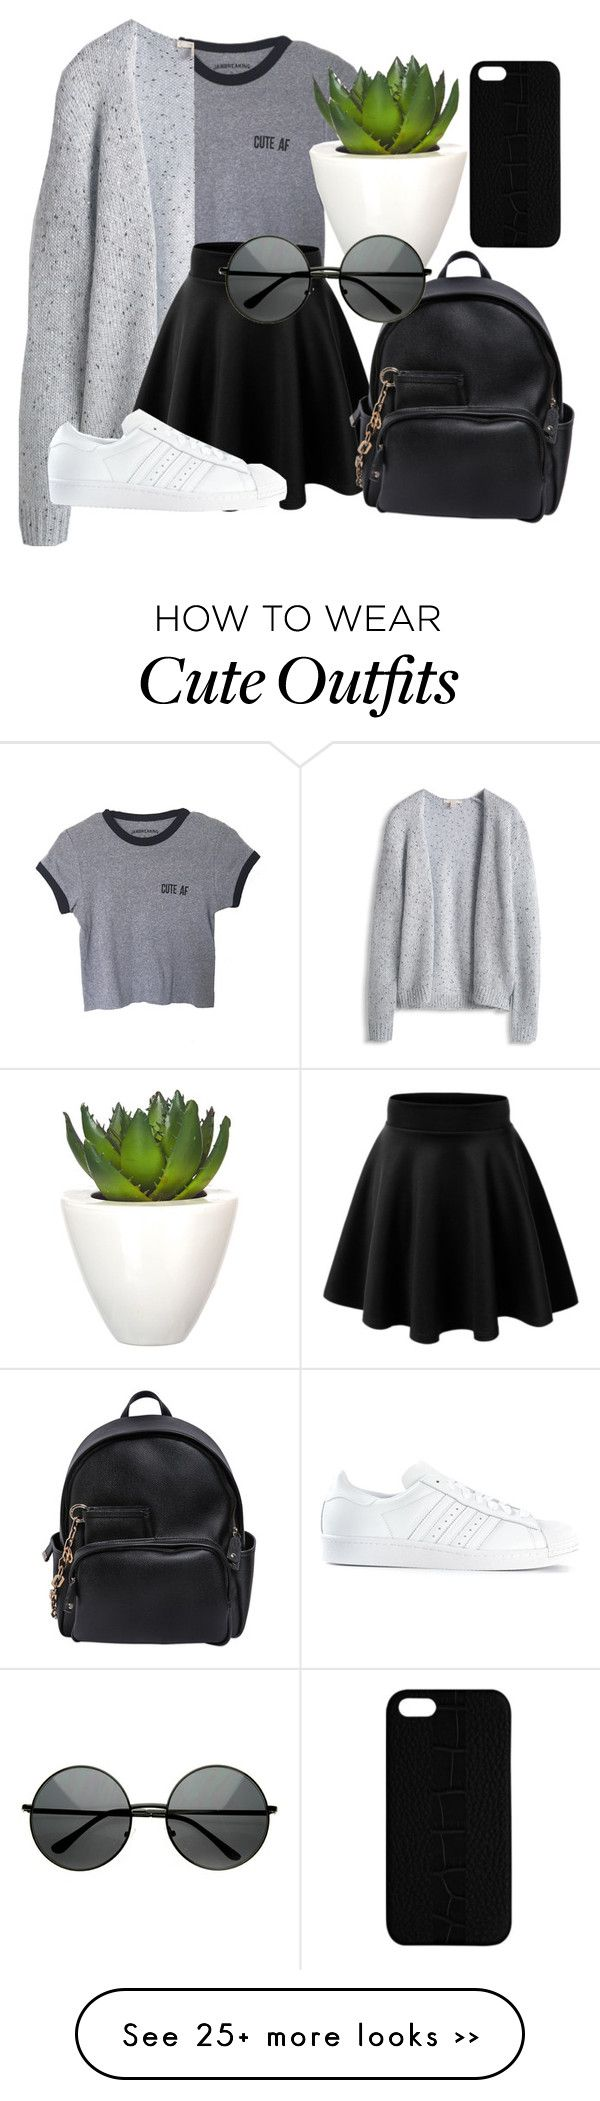 """""""First outfit"""" by volacxous on Polyvore"""